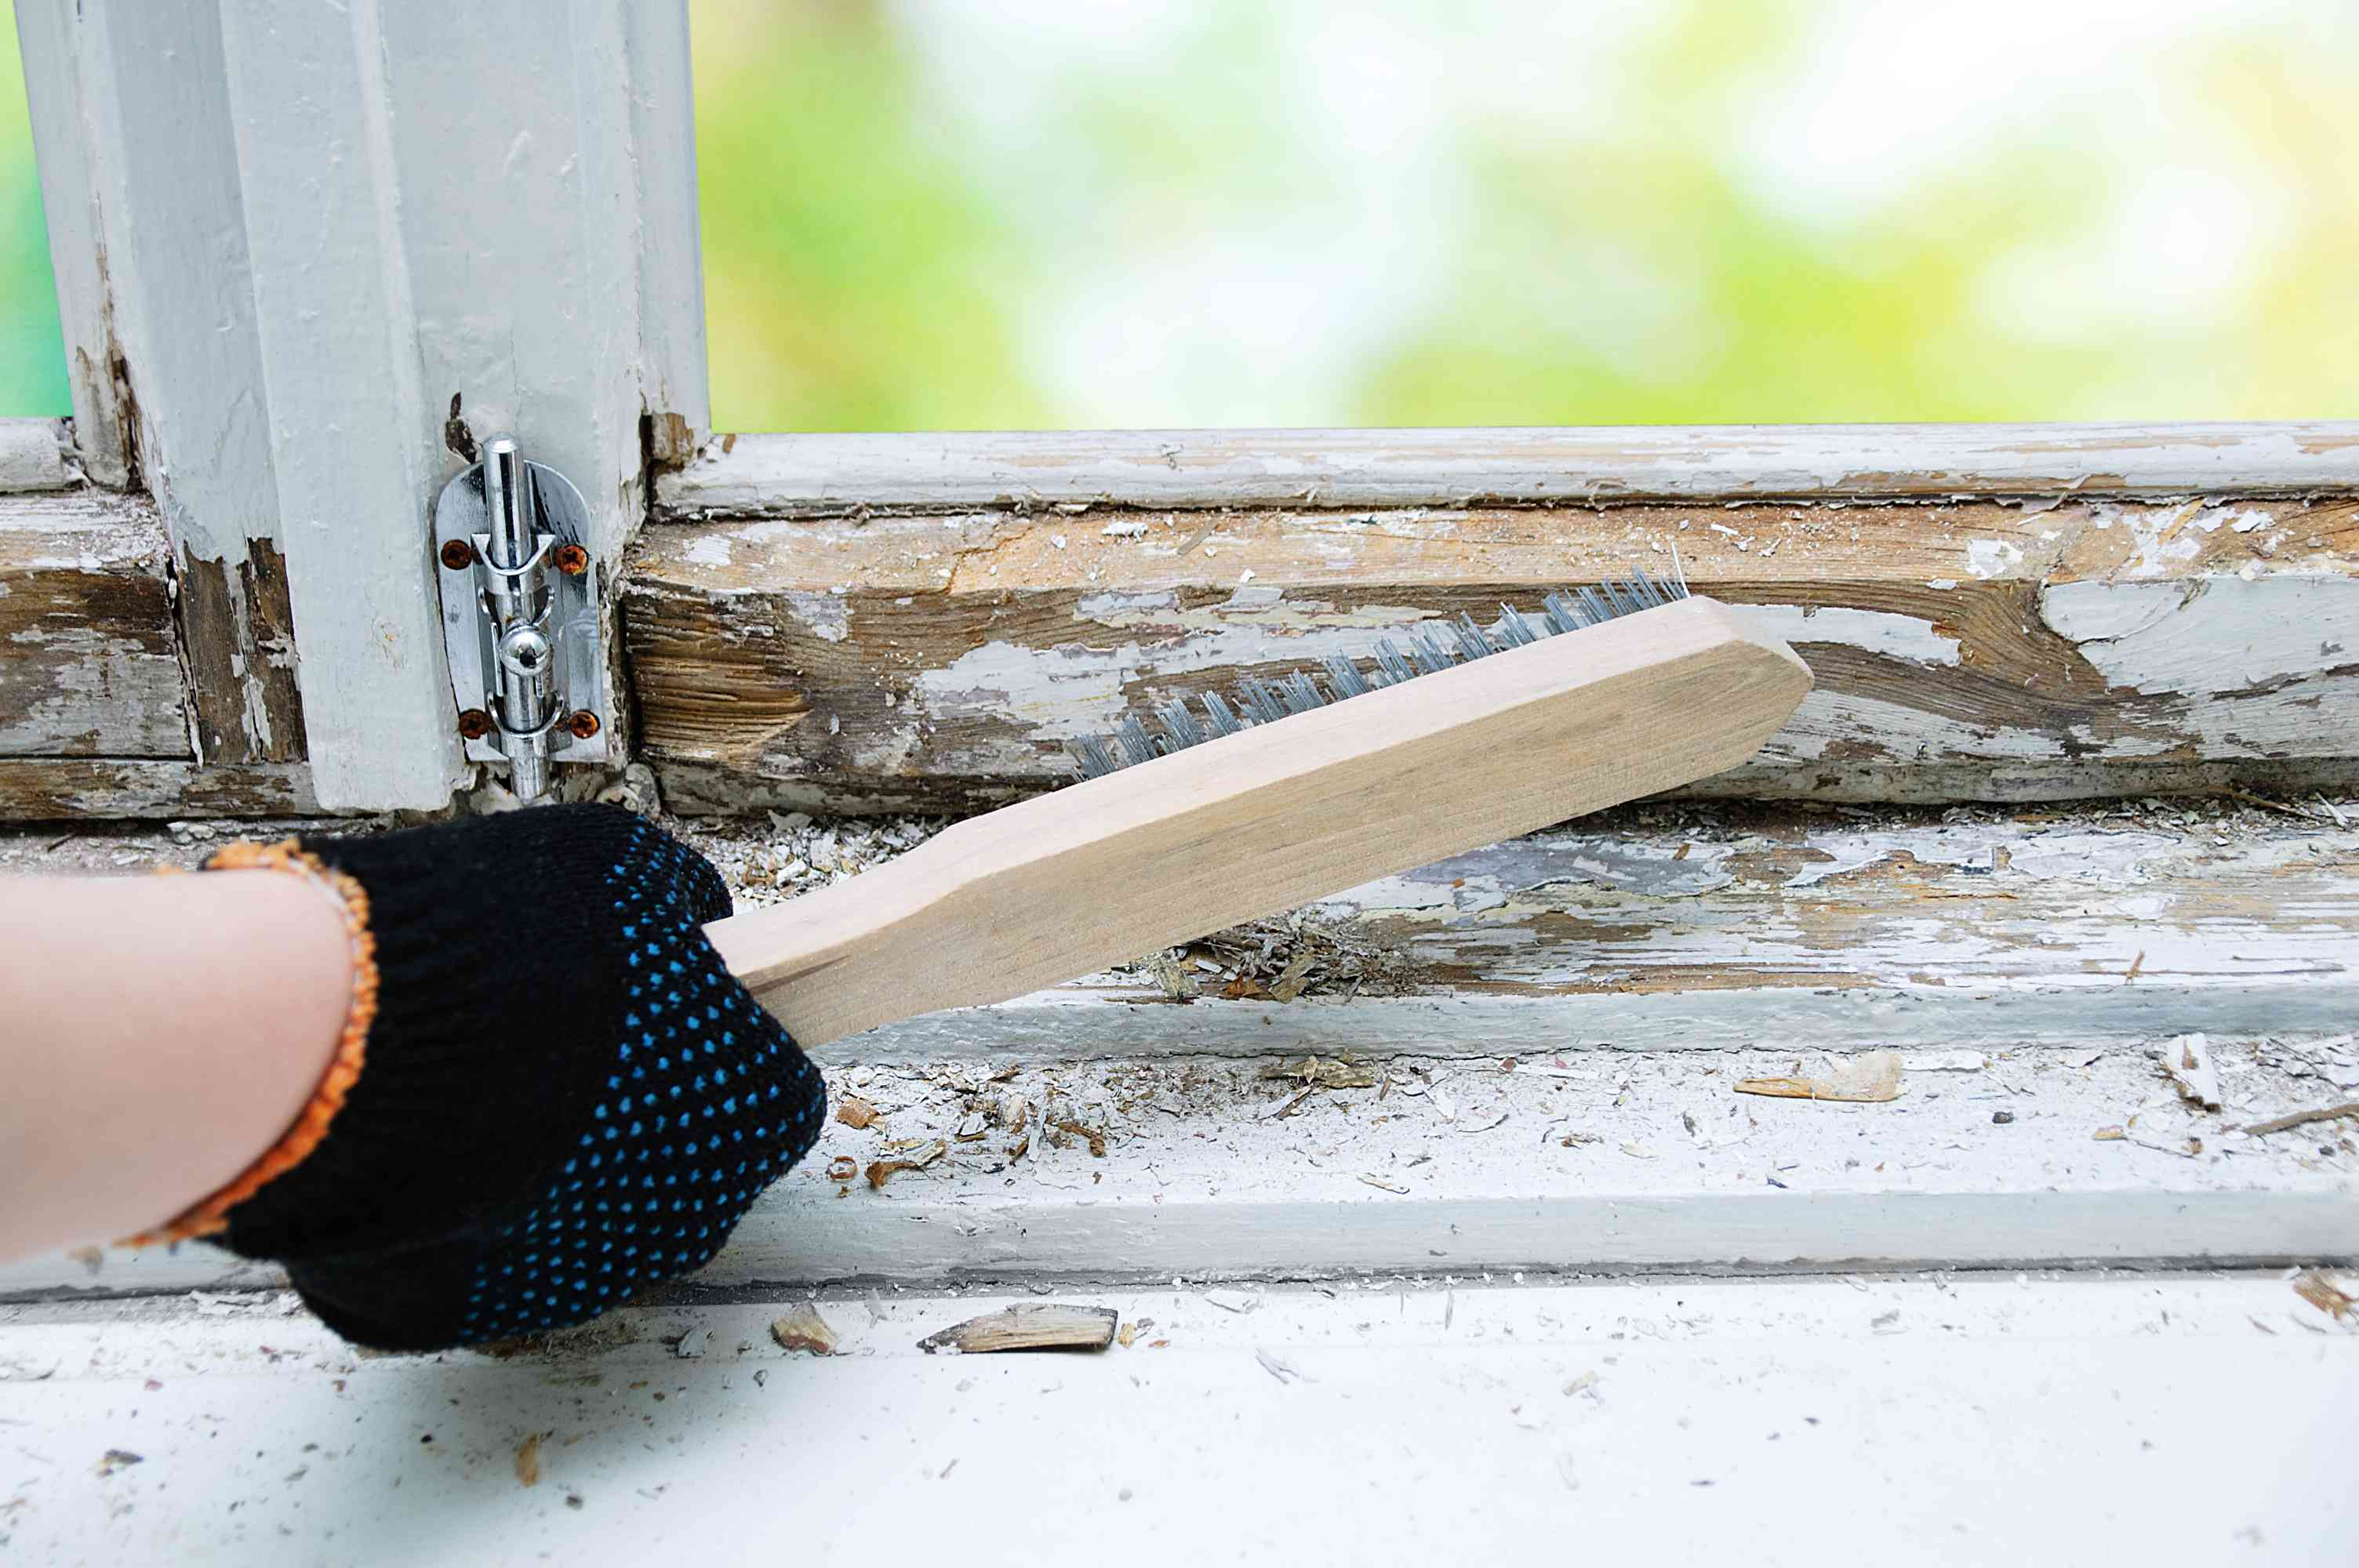 Brush with metal bristles in hand to remove old paint from the window.